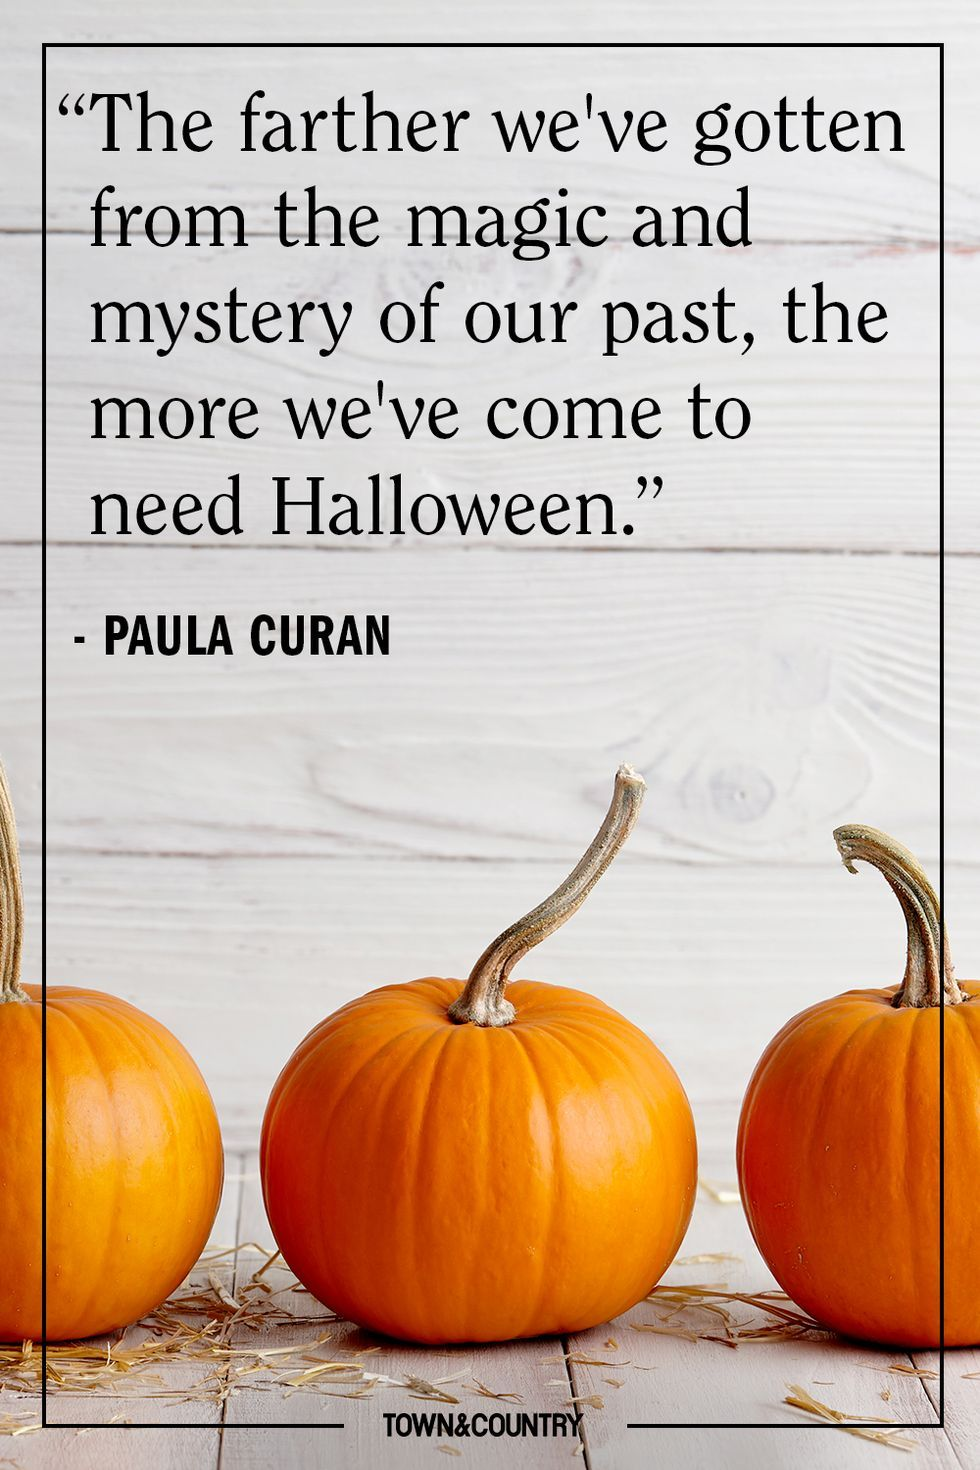 37 Halloween Quotes to Get You in the Spooky Spirit in